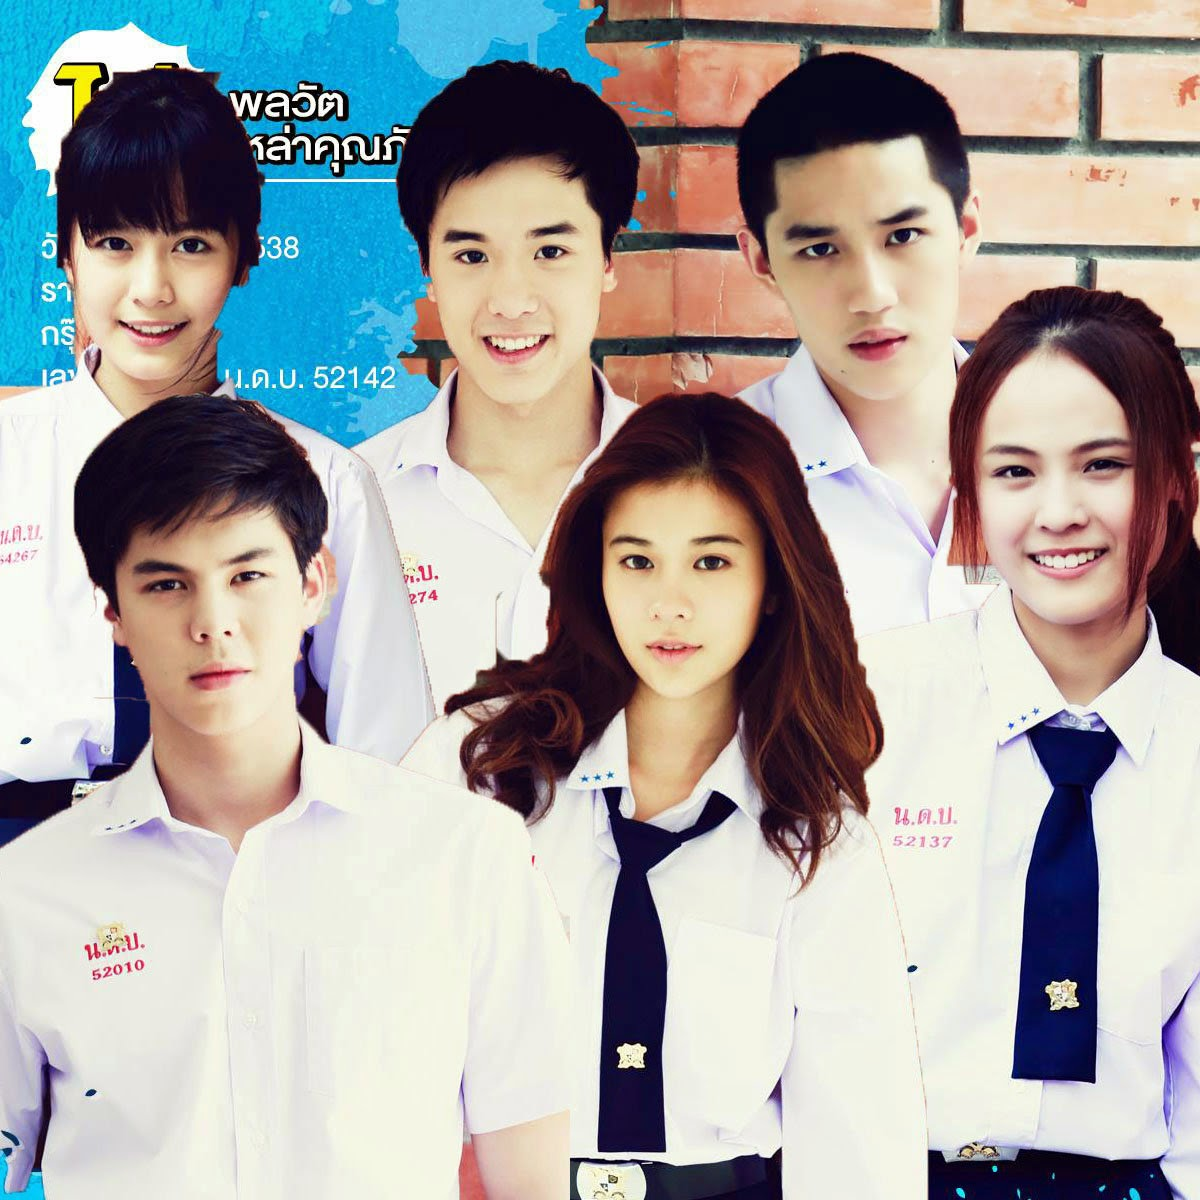 myfriendstoldmeaboutyou - Guide hormones season 3 ep 1 full